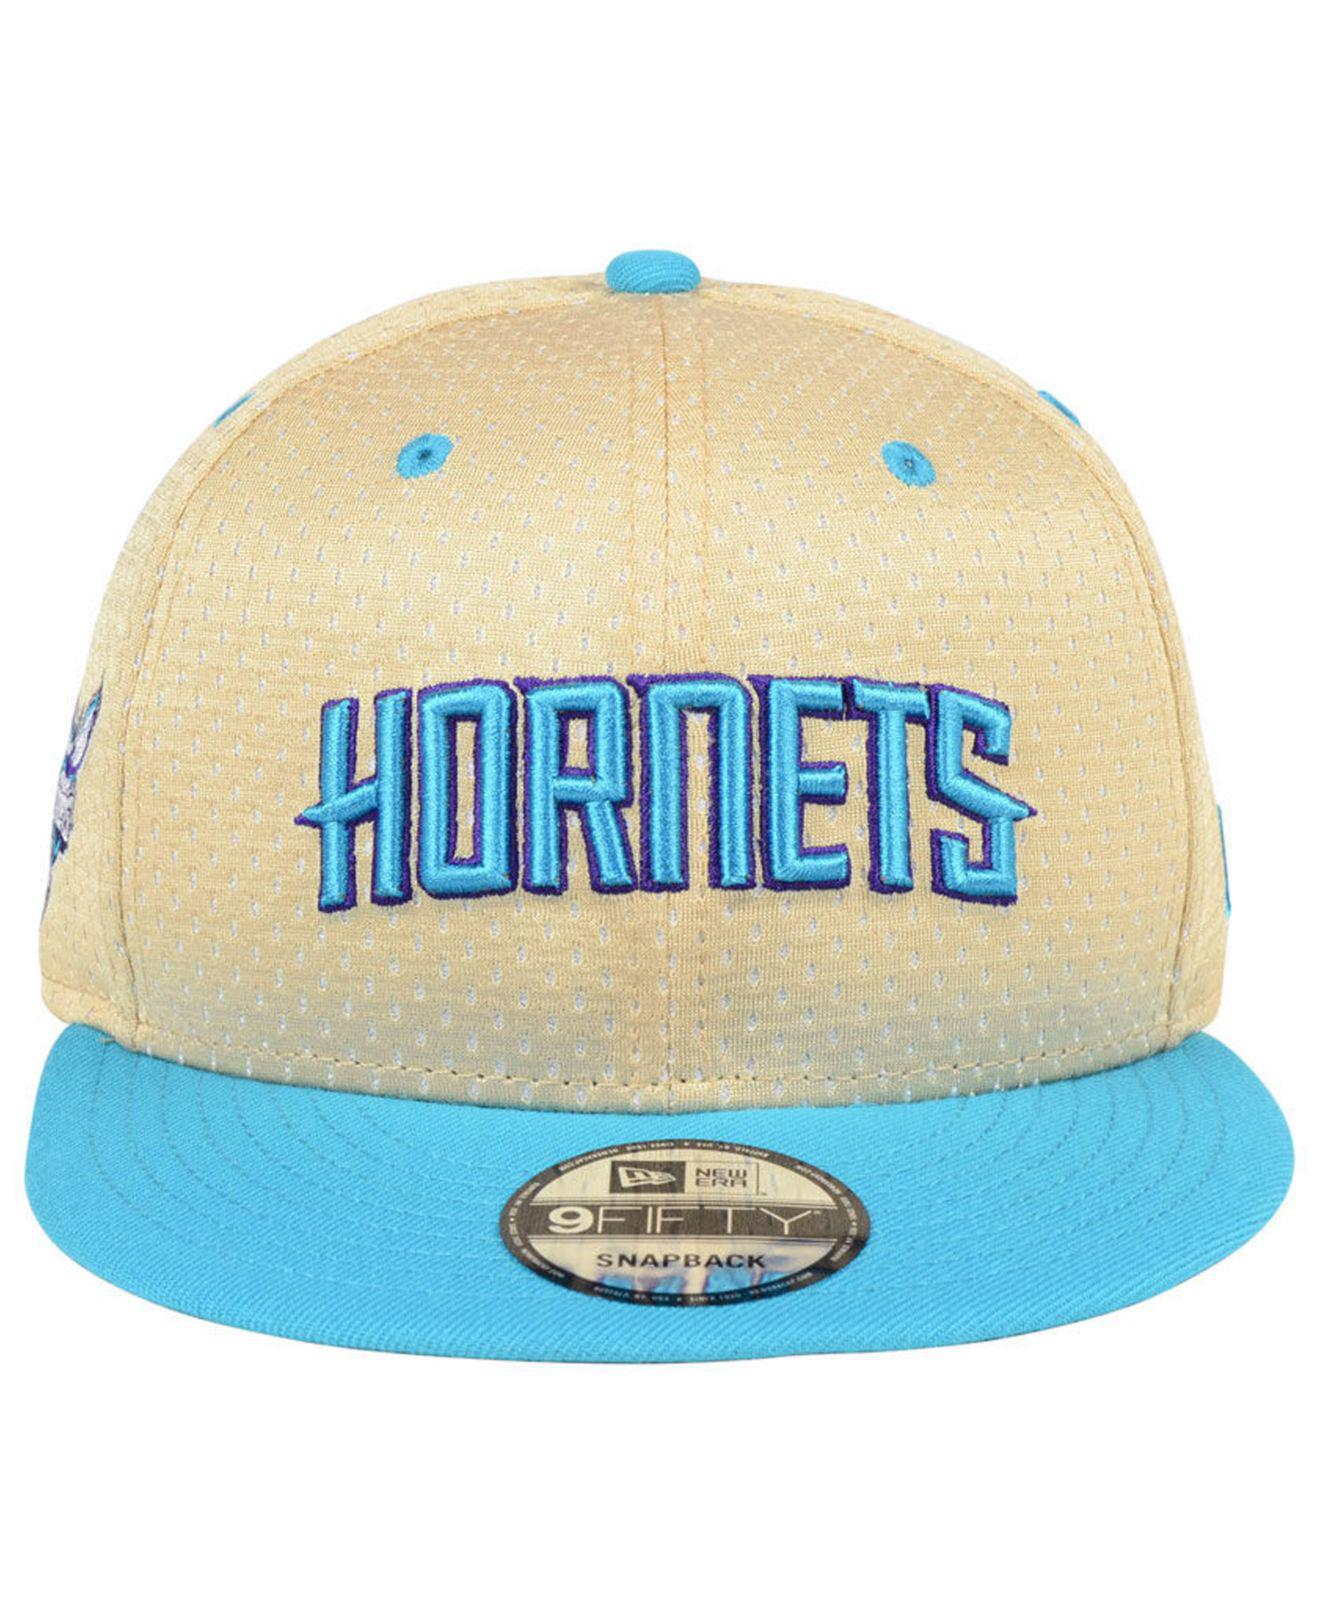 size 40 bb3ea dceda hot chicago bulls new era nba night sky 9fifty snapback cap b6bcb b498f   closeout lyst ktz charlotte hornets champagne 9fifty snapback cap in blue  for men ...